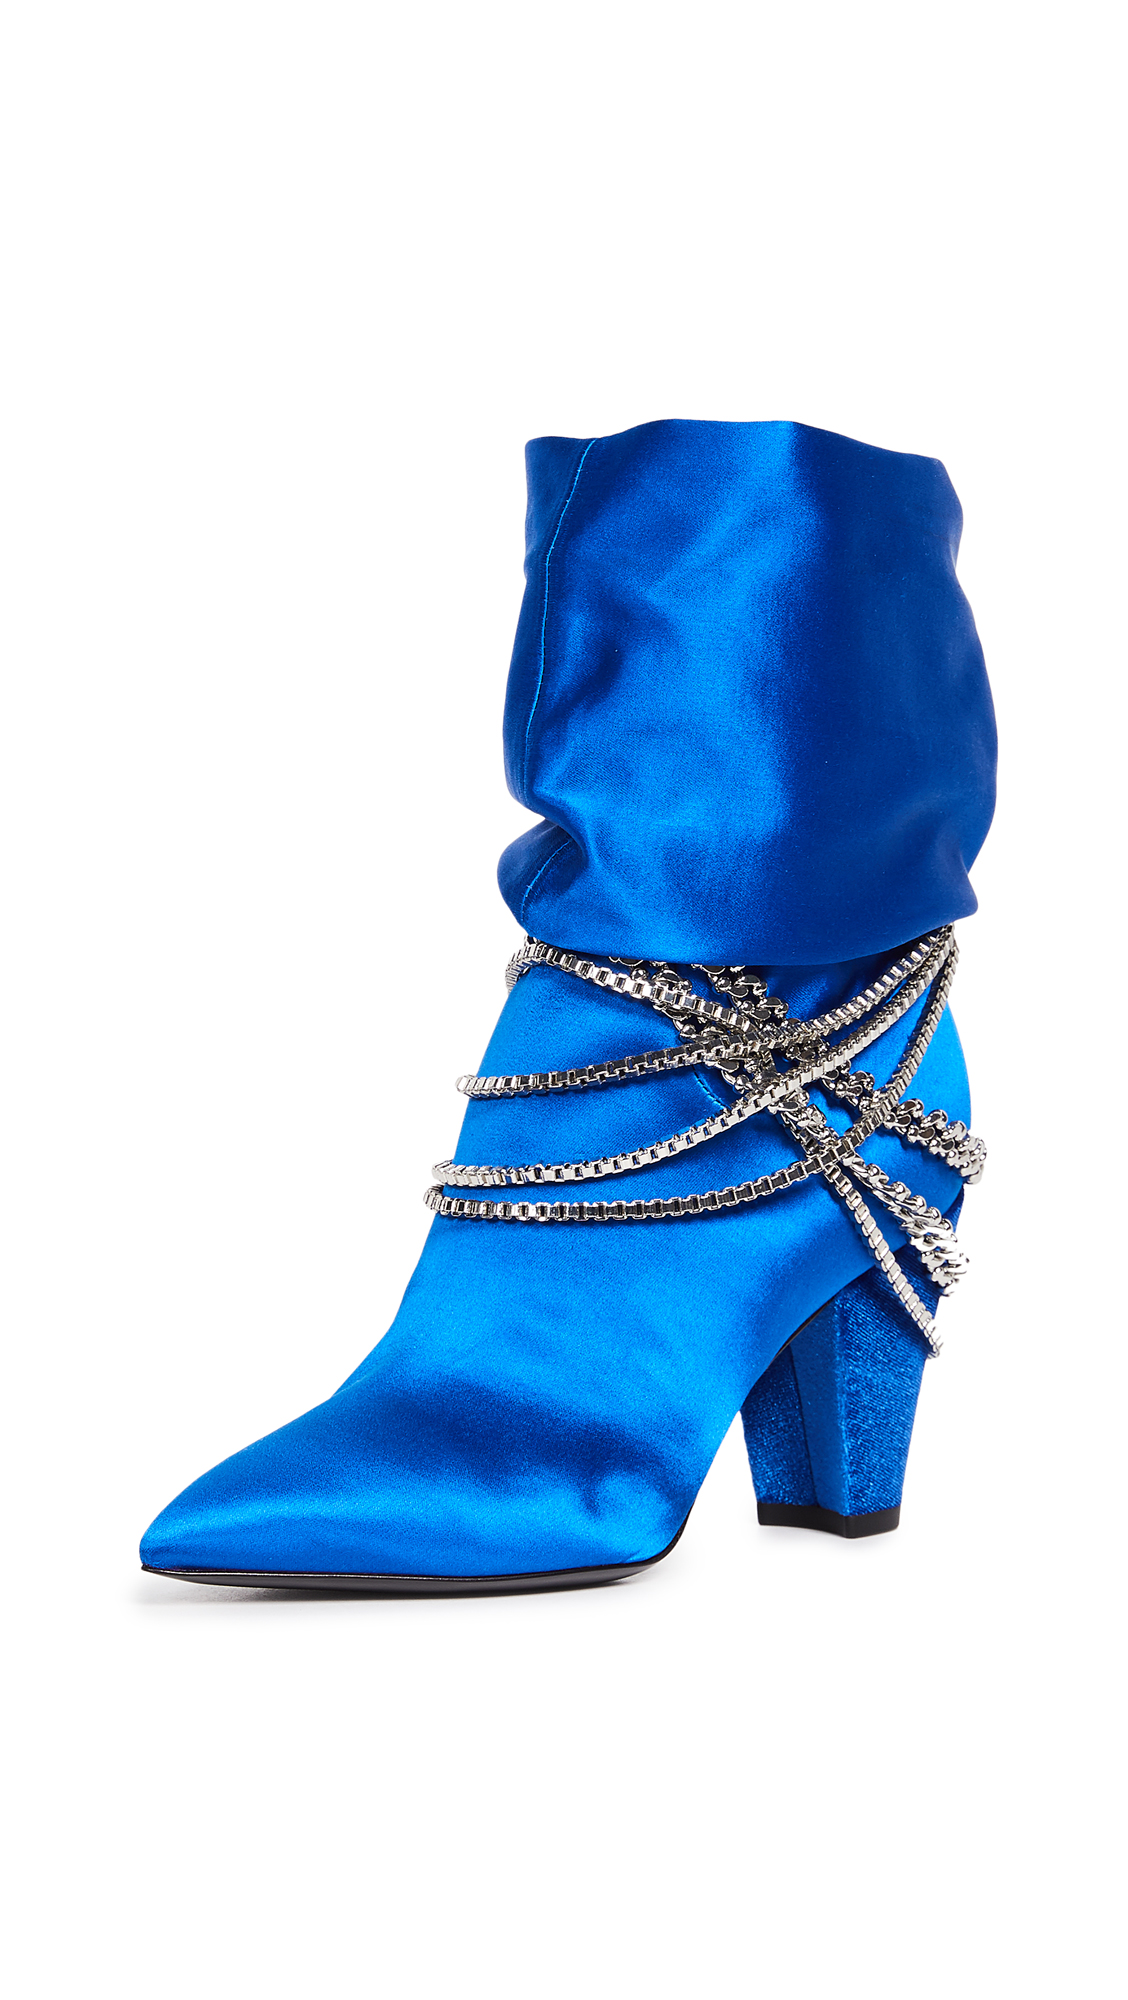 Self Portrait Sadie Boots - Bright Blue